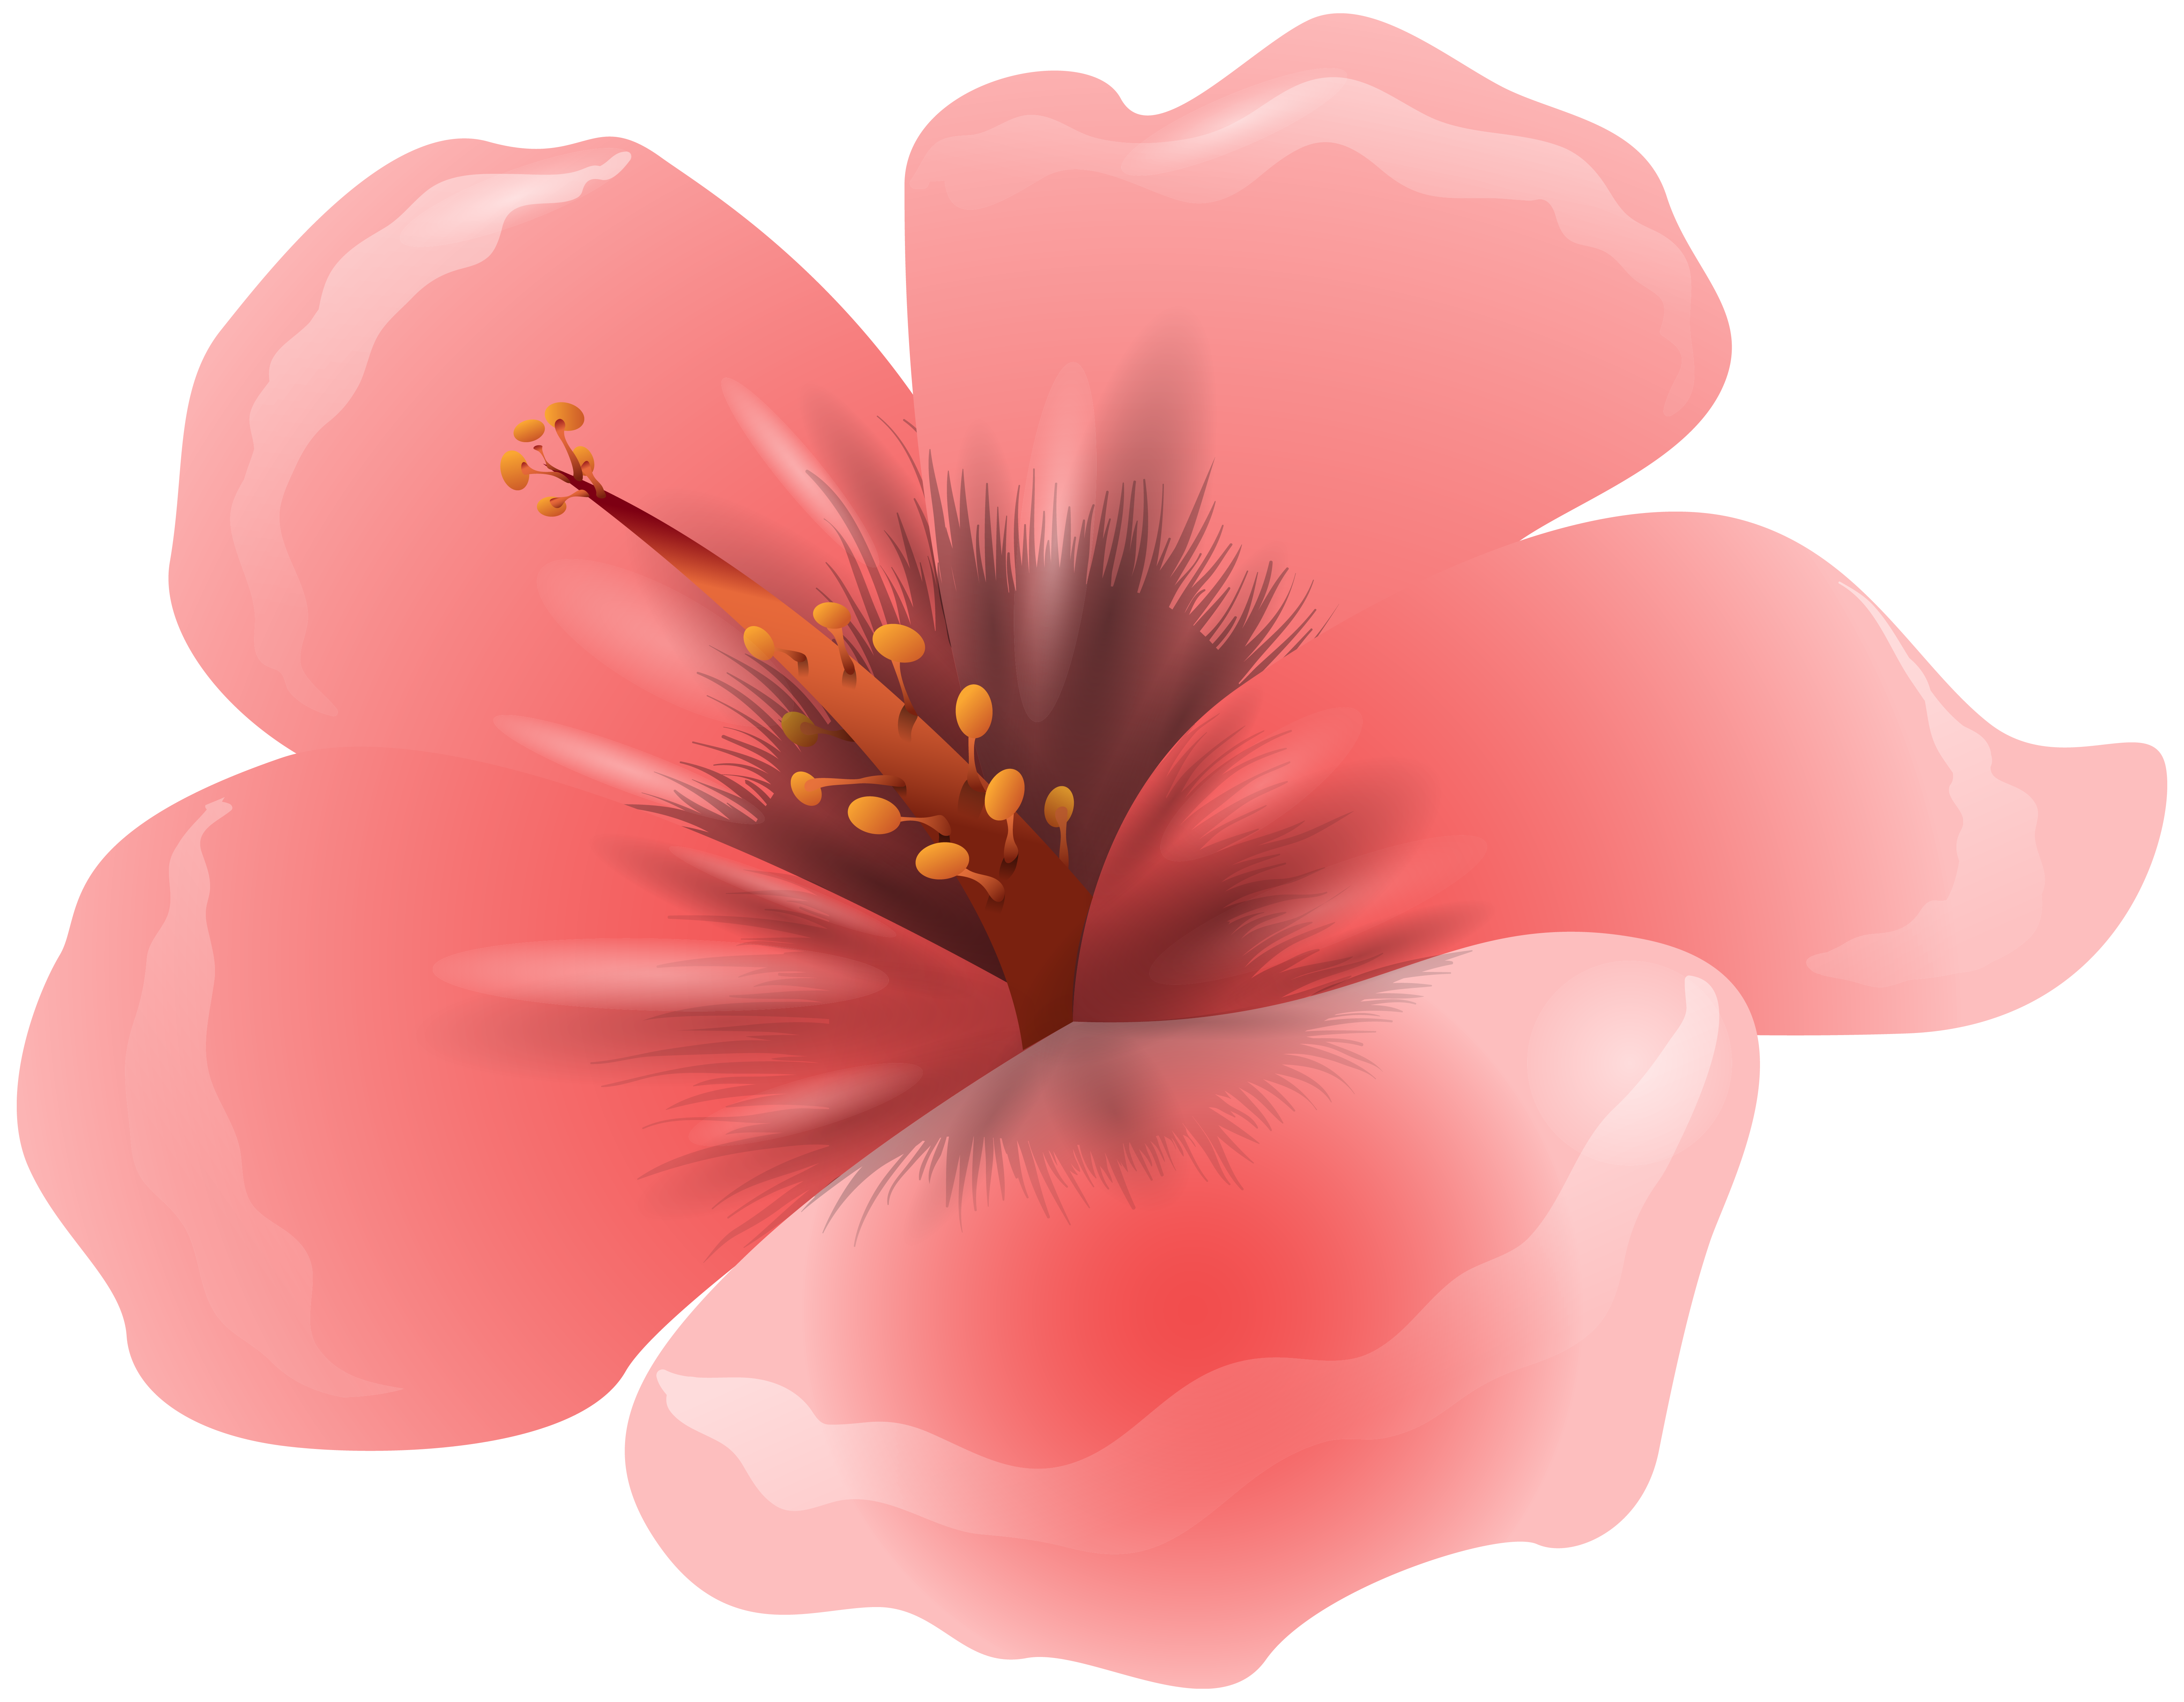 Pink png image yopriceville. Clipart gallery large flower